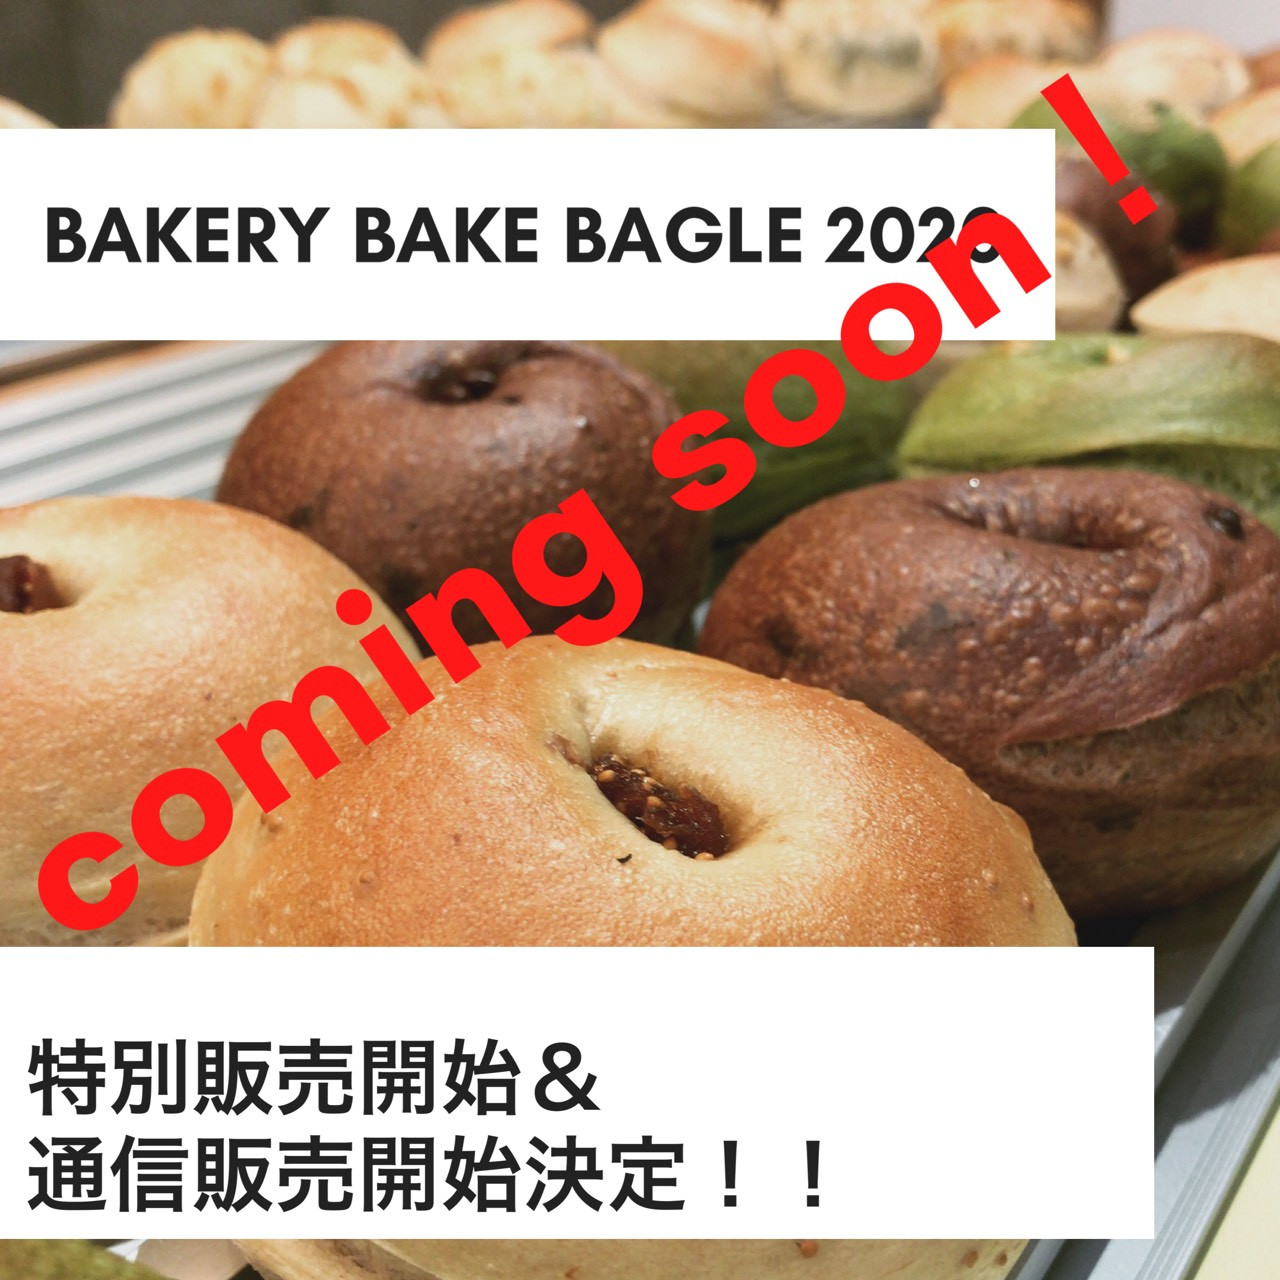 BAKERY BAKE BAGEL 2020